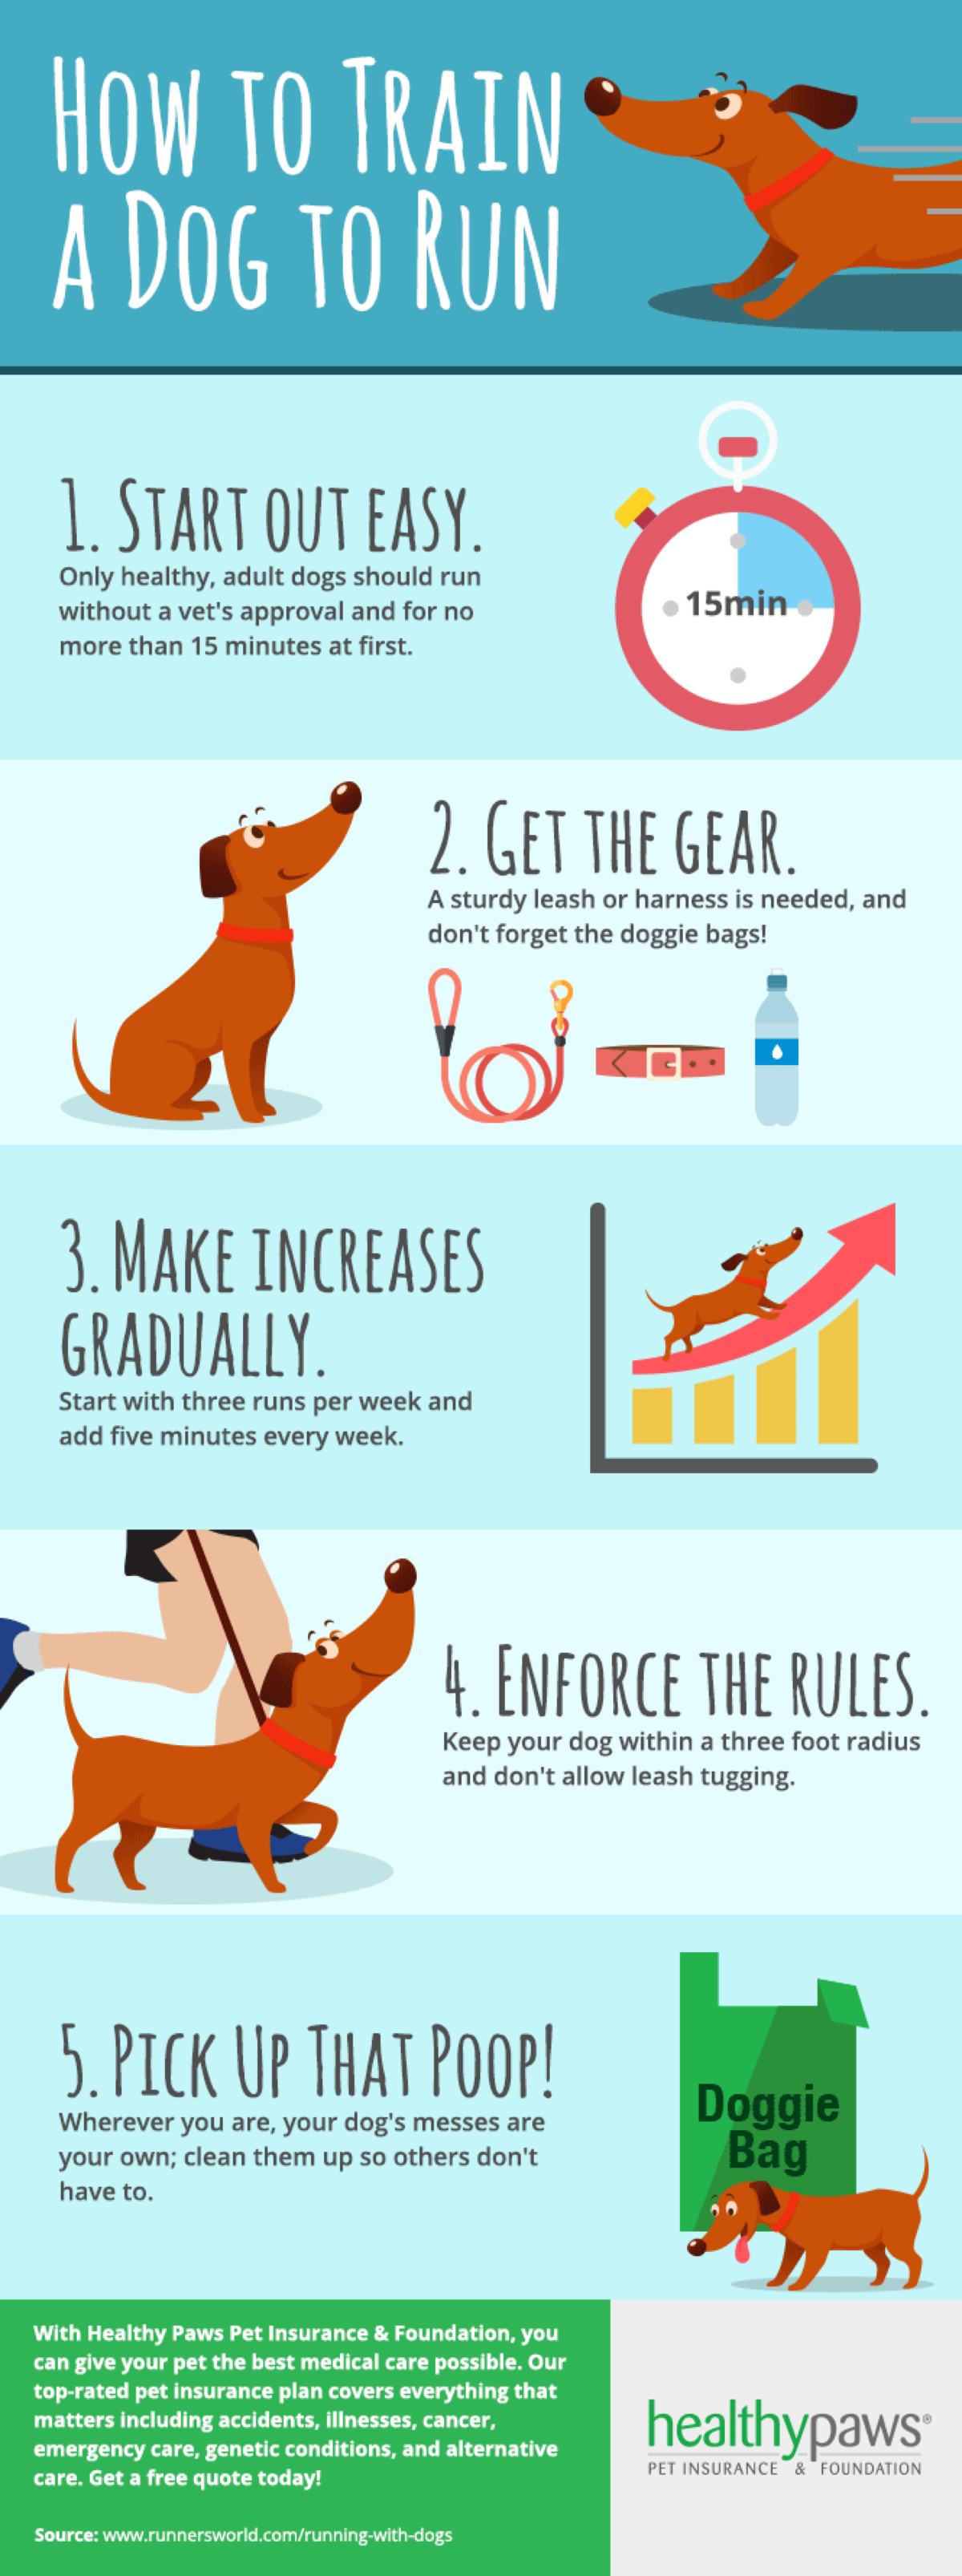 dog_running_infographic_600_1606.png